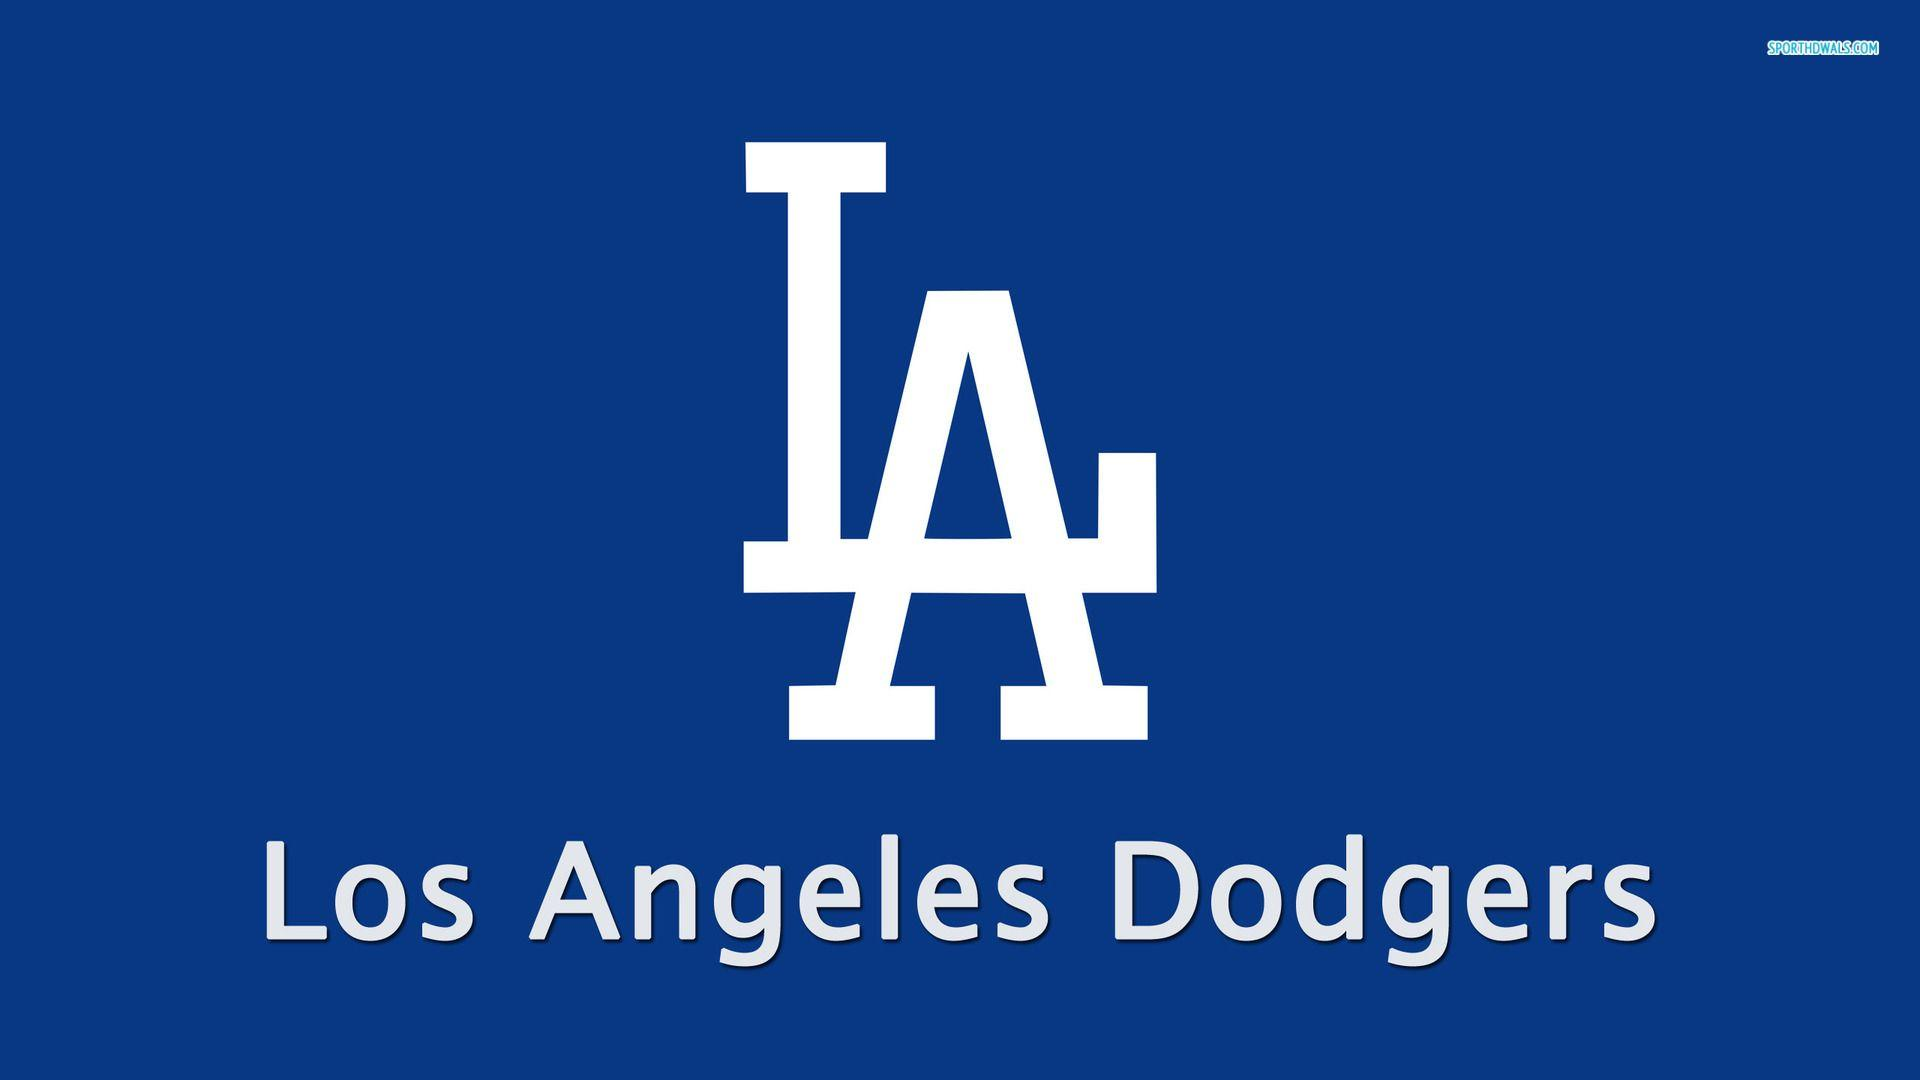 The Los Angeles Dodgers Wallpapers Wallpaper Cave